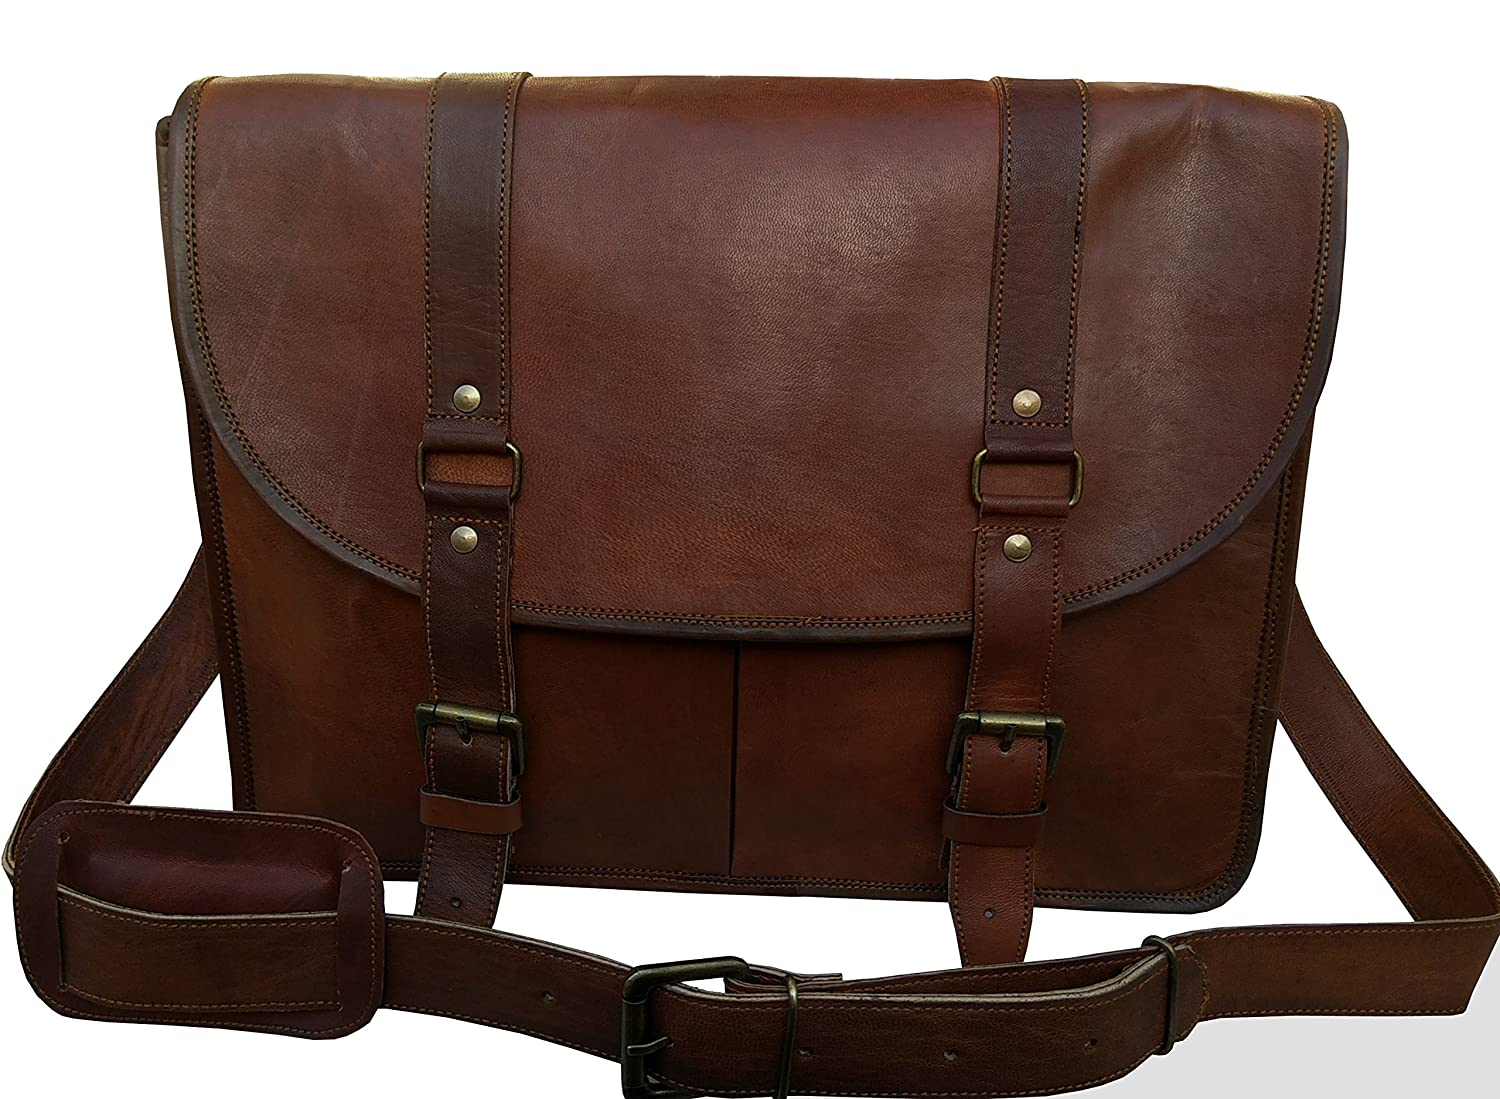 Leather Messenger Bag for Men & Women, Vintage Business Briefcase for Laptops & Books ~ Handmade, Rugged & Distressed ~ Genuine Retro Satchel ~ Great for Office, College, School & More, 15 Inch VINTAGE COUTURE plastic